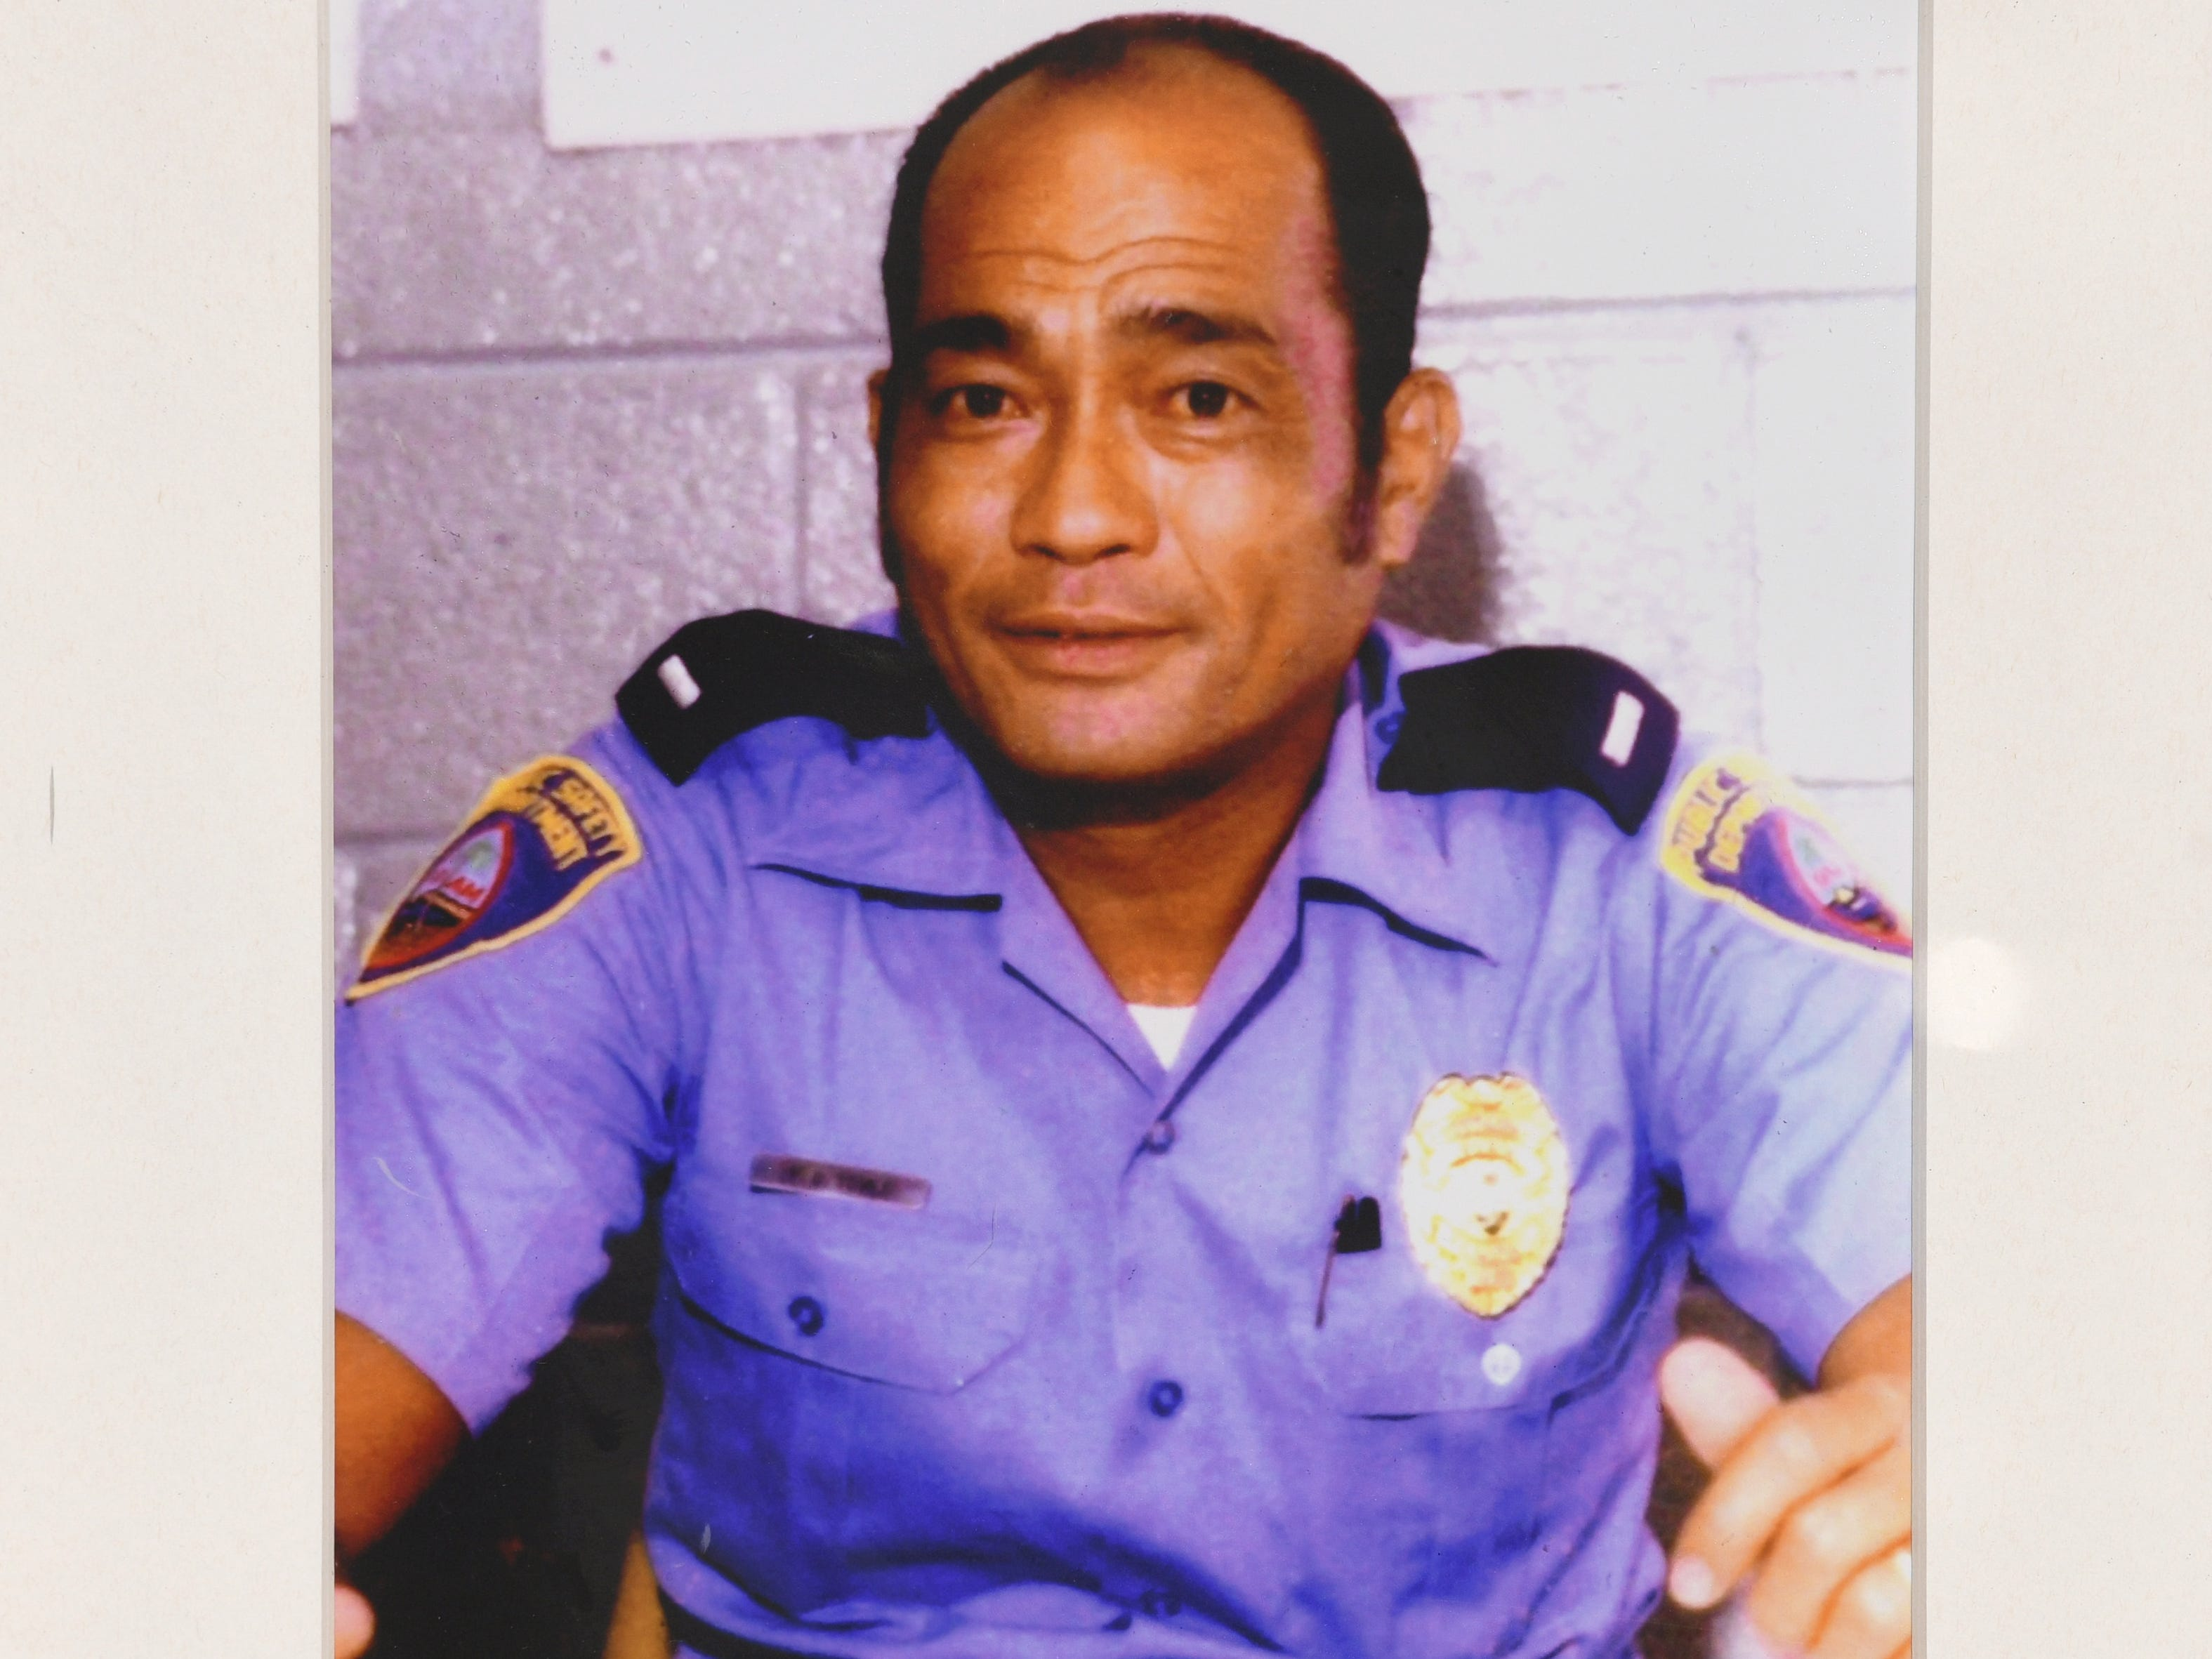 Police Lt. Francisco Toves